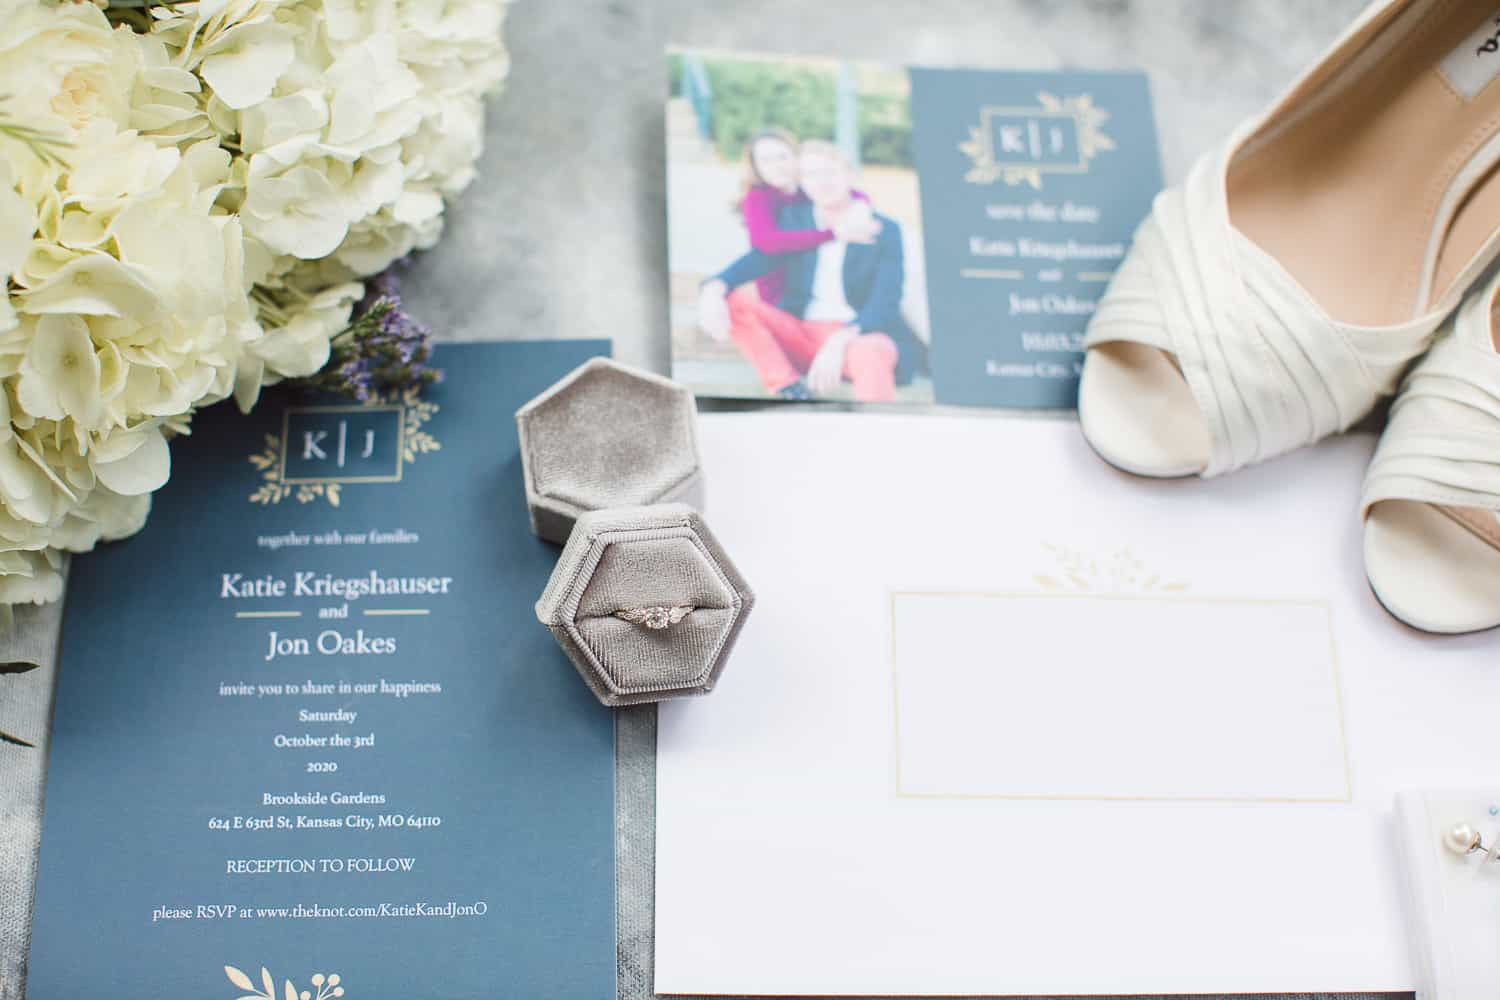 Navy and white wedding invitation and bouquet